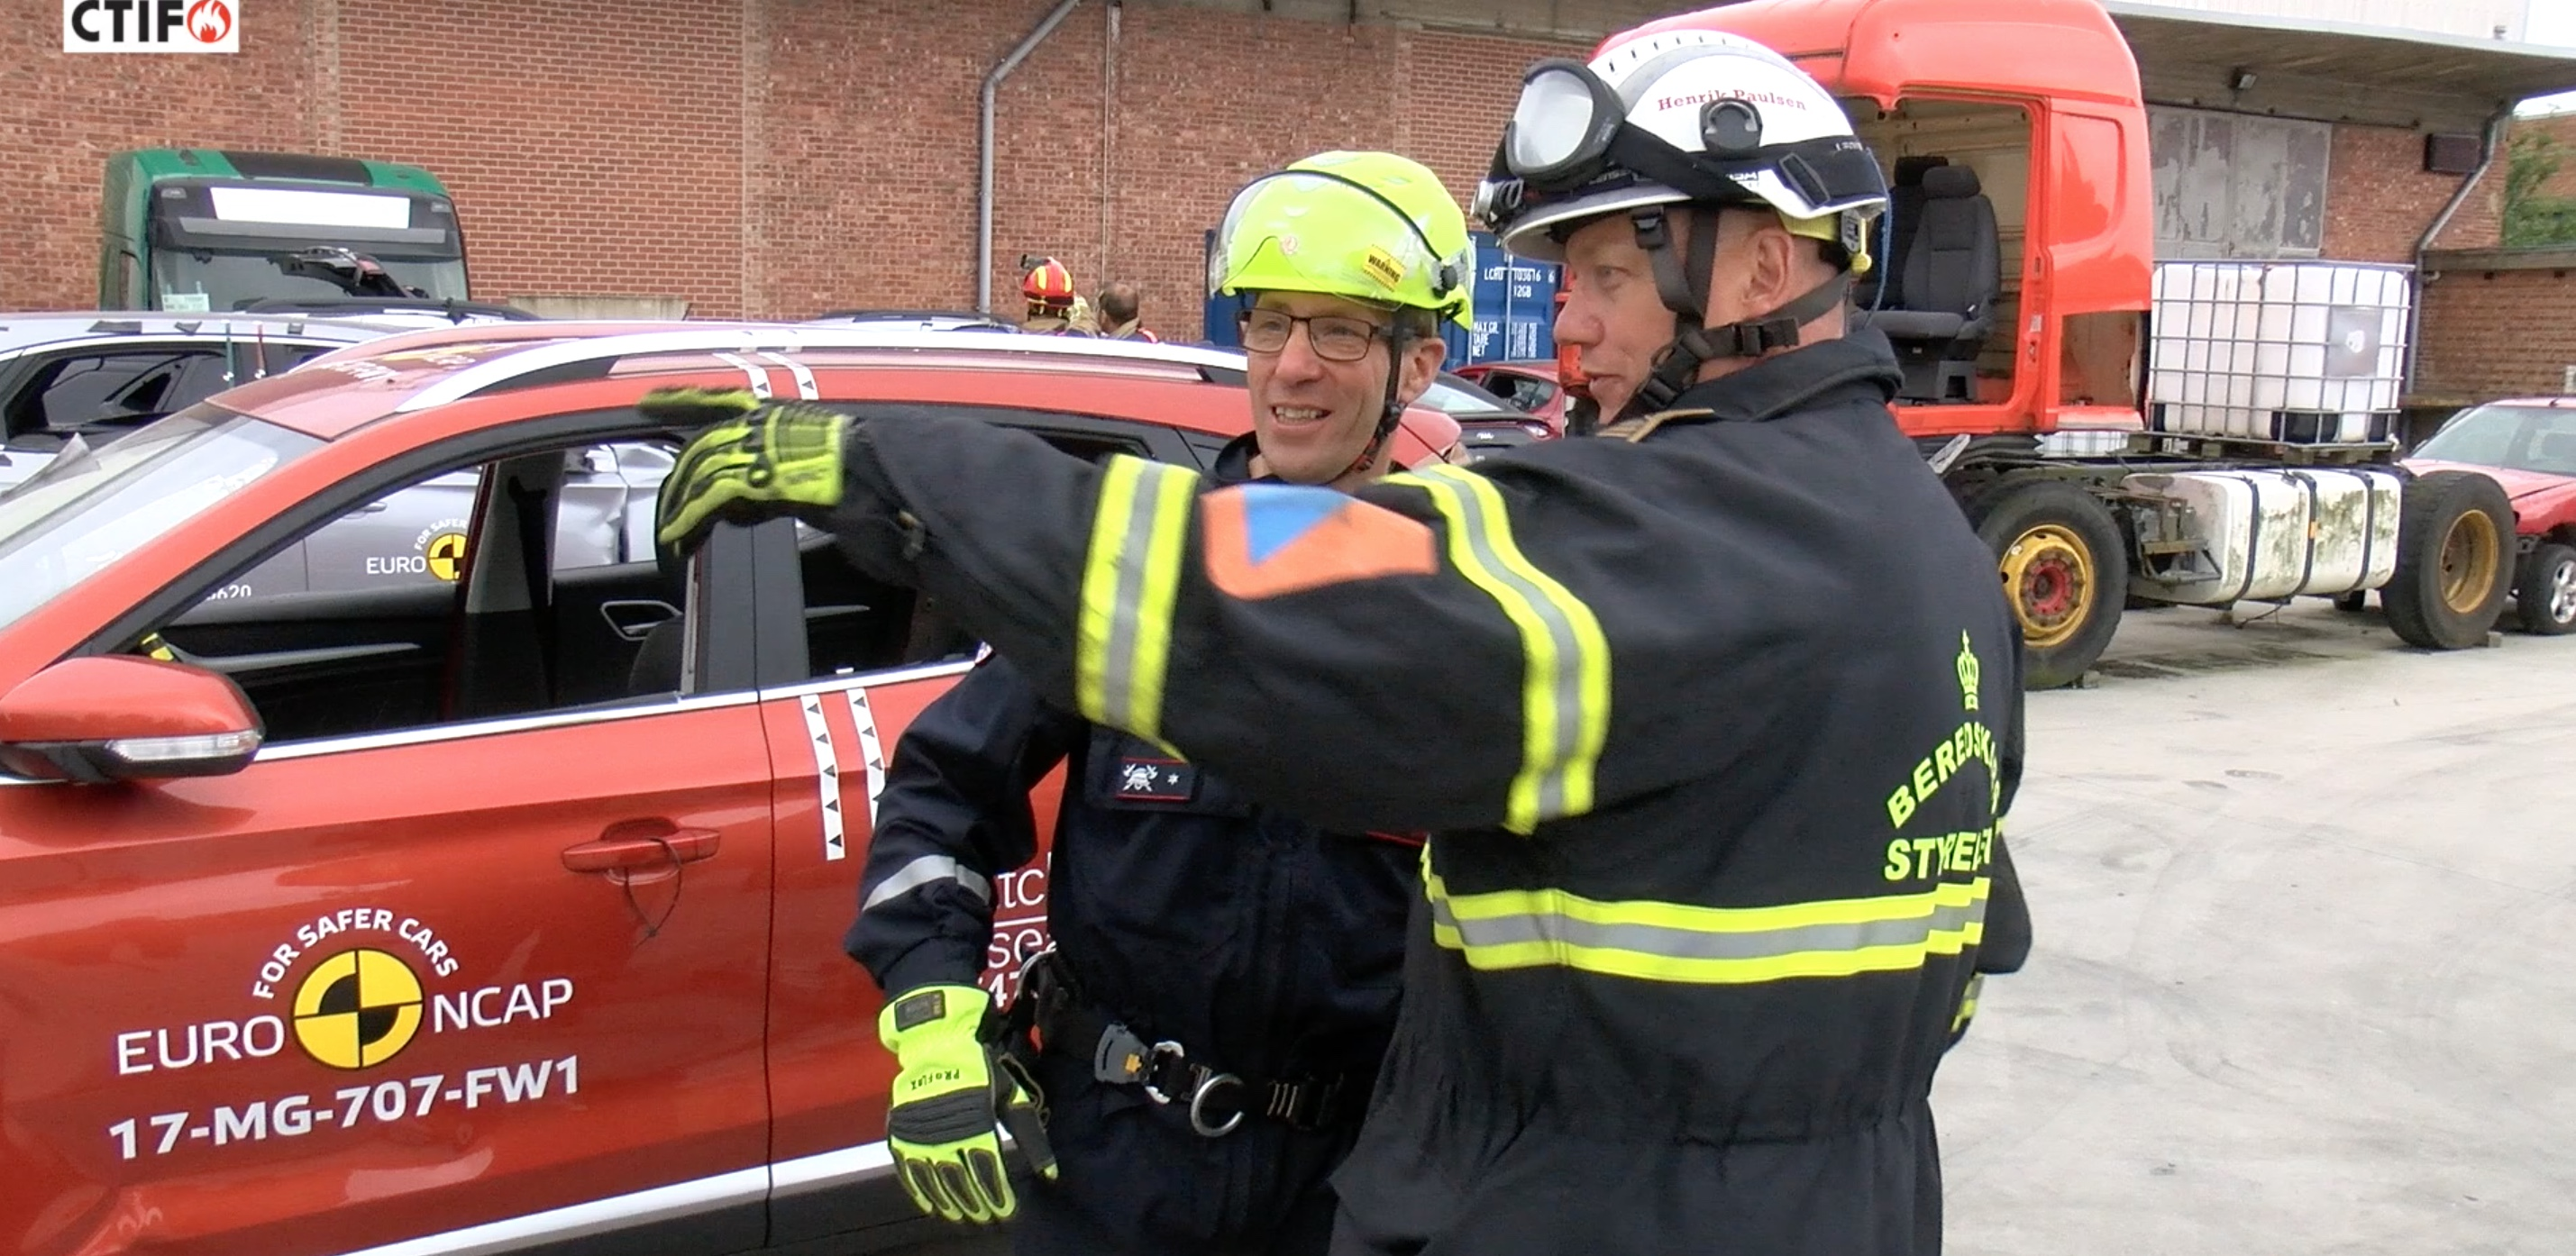 Extrication tests in Brussels. Photo: Luc De Meyer